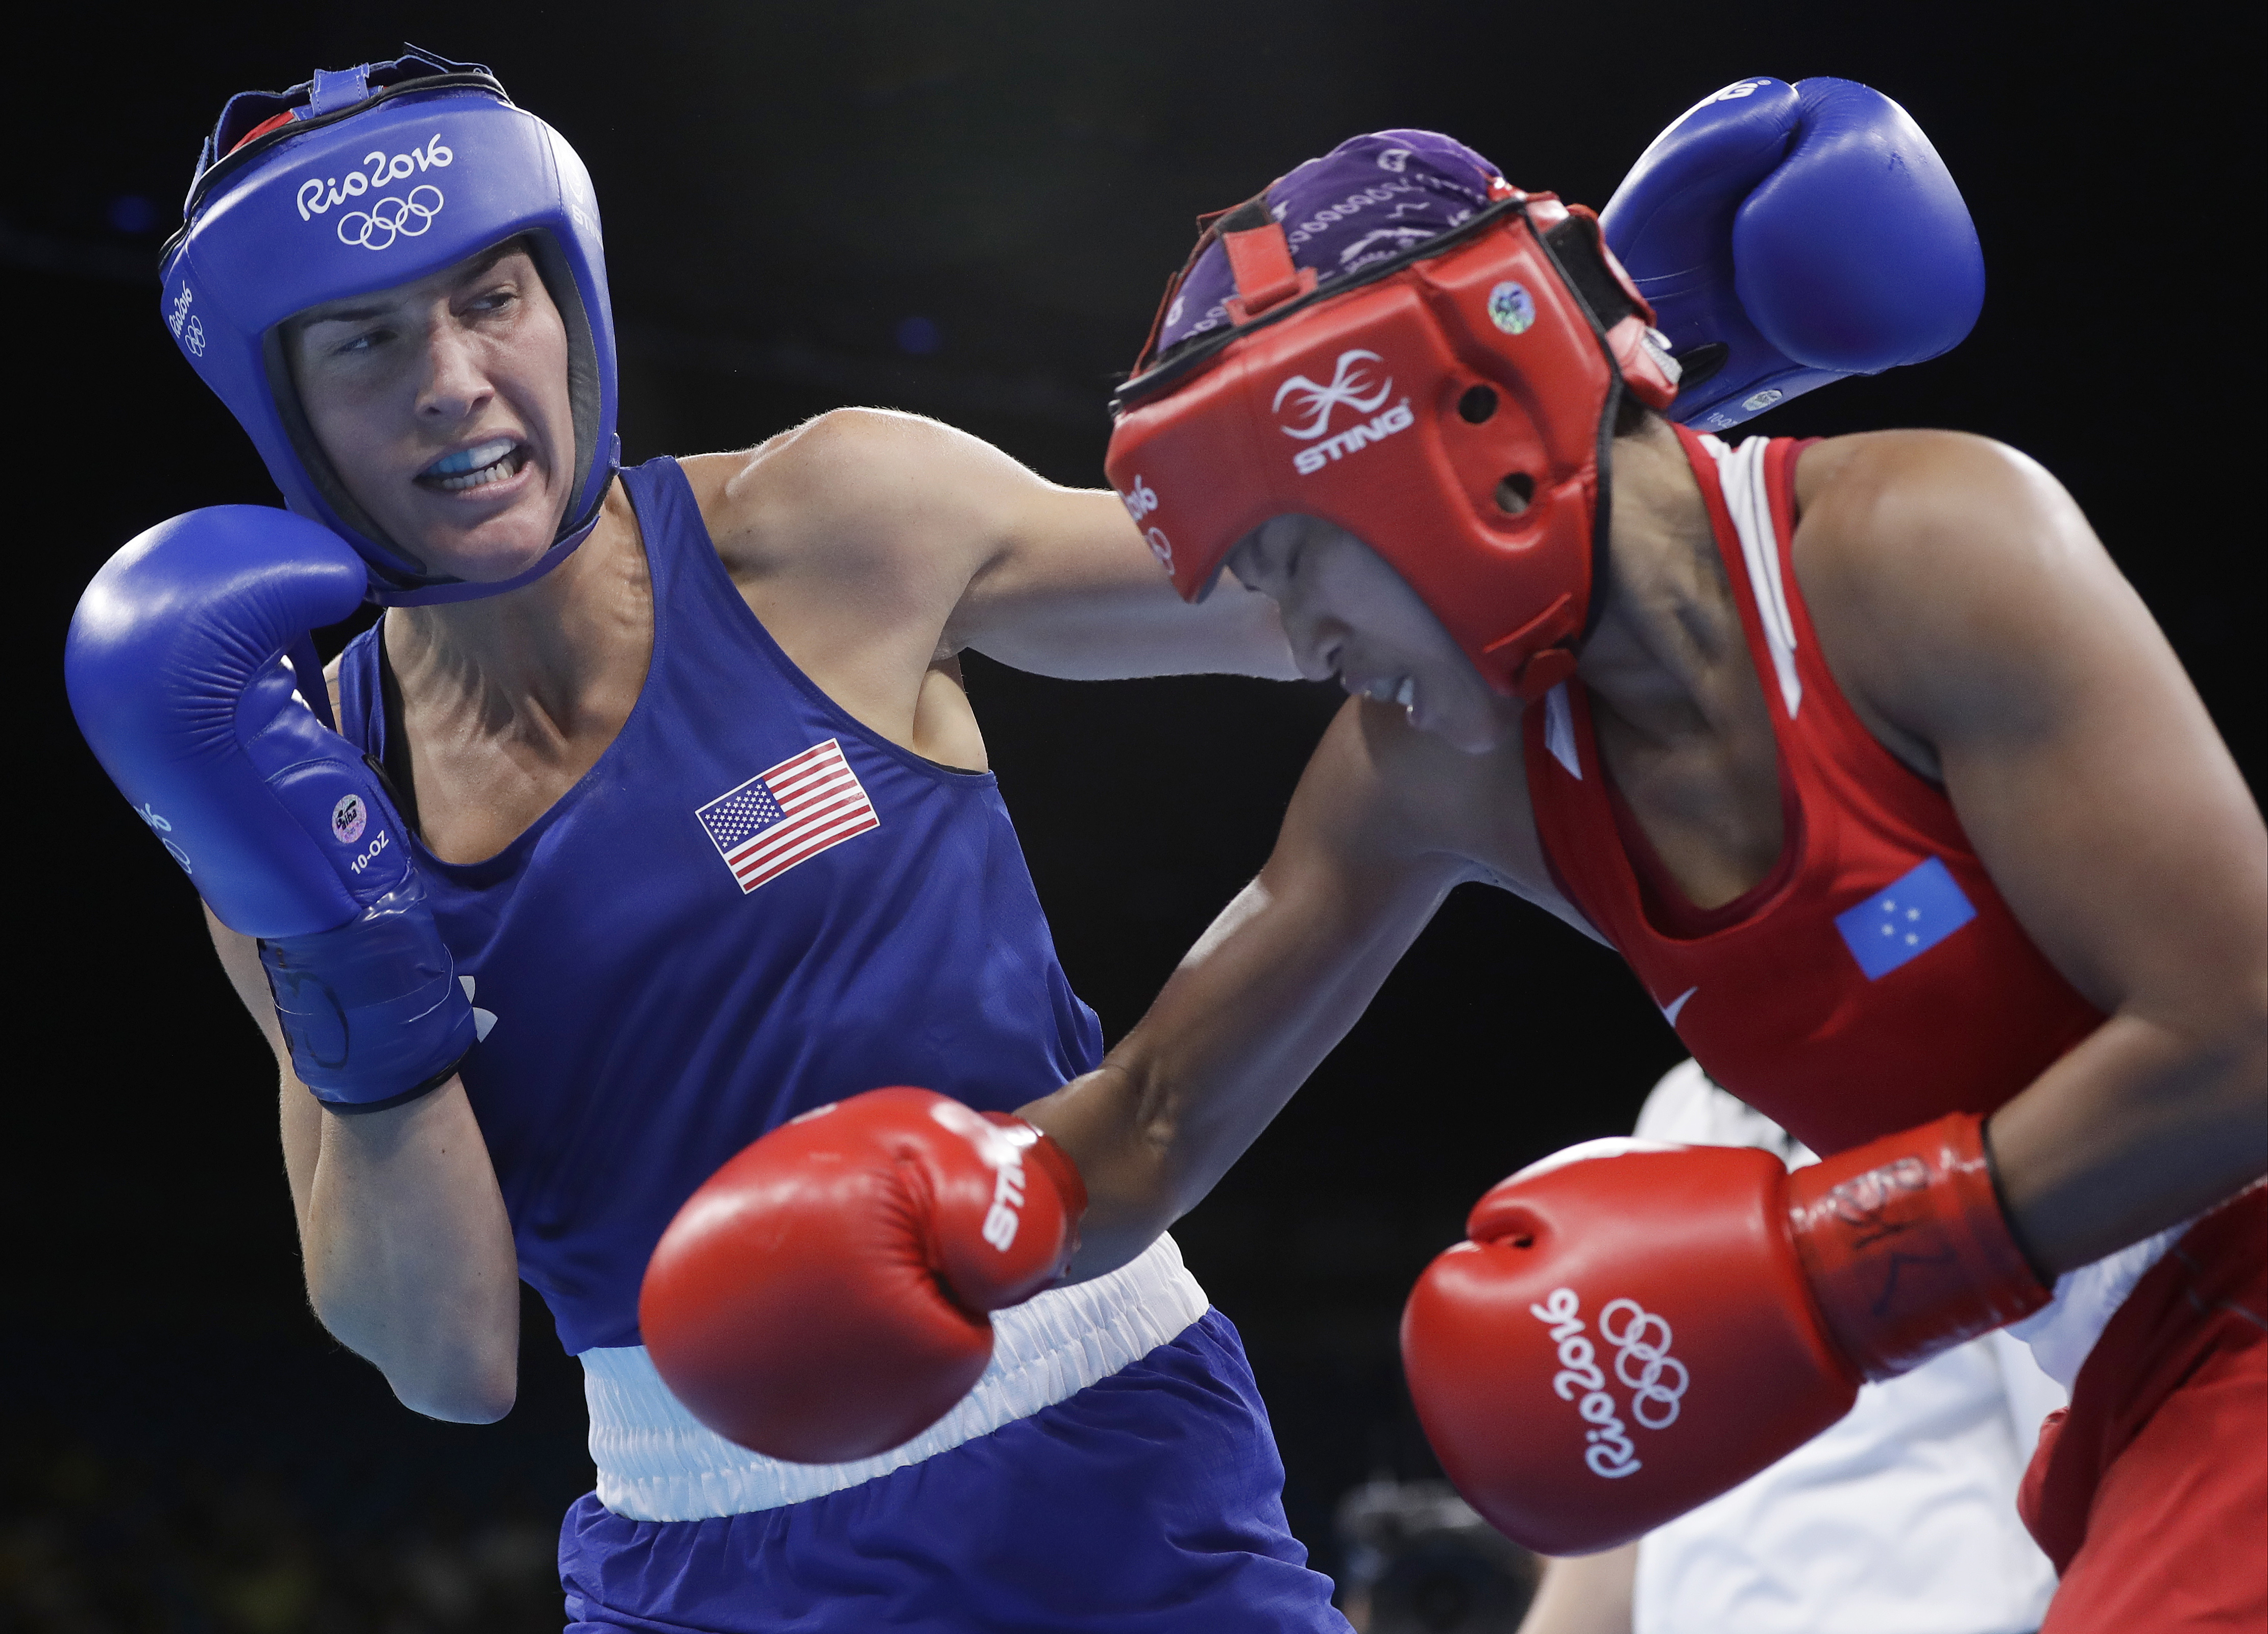 FILE - In this Friday, Aug. 12, 2016 file photo, United States' Mikaela Joslin Mayer, left, fights Micronesia's Jennifer Chieng during a women's lightweight 60-kg preliminary boxing match at the 2016 Summer Olympics in Rio de Janeiro, Brazil. U.S. Olympic